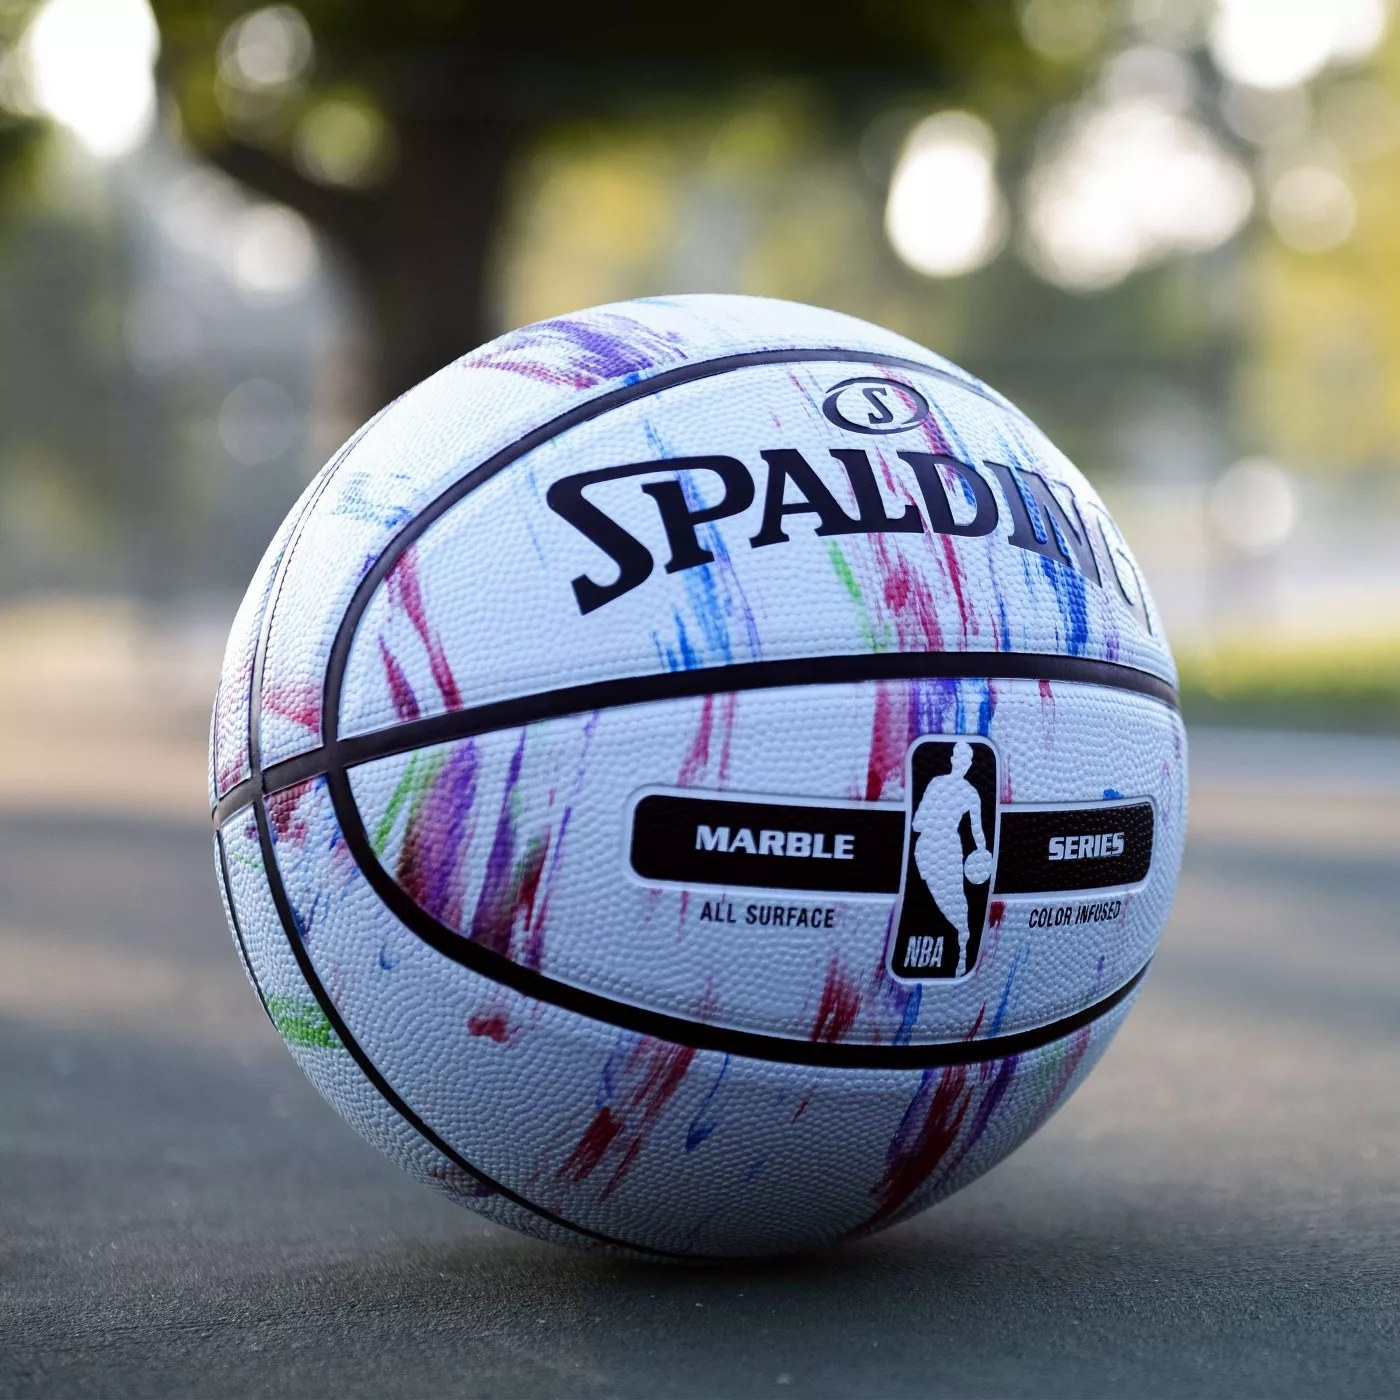 The Spalding all-surface basketball with a marble pattern